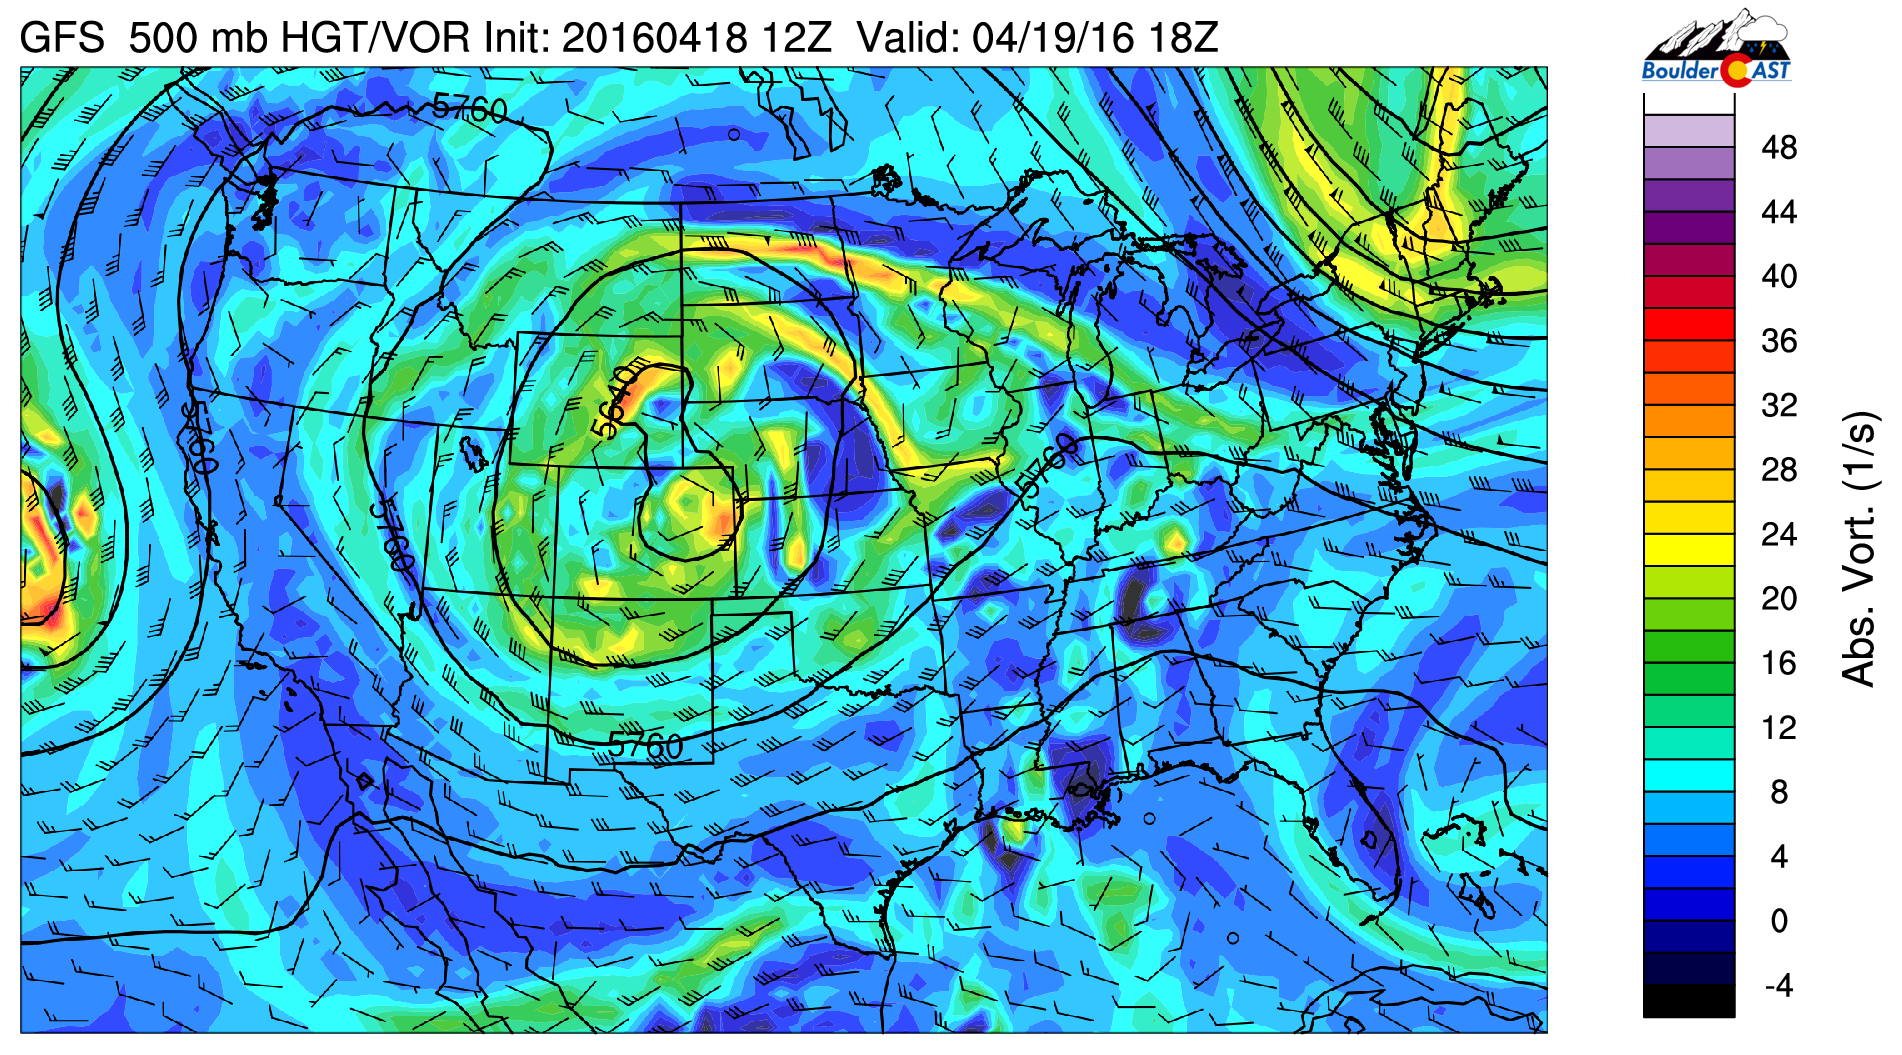 GFS 500 mb vorticity map for this afternoon, showing the upper-low still over northern Colorado...